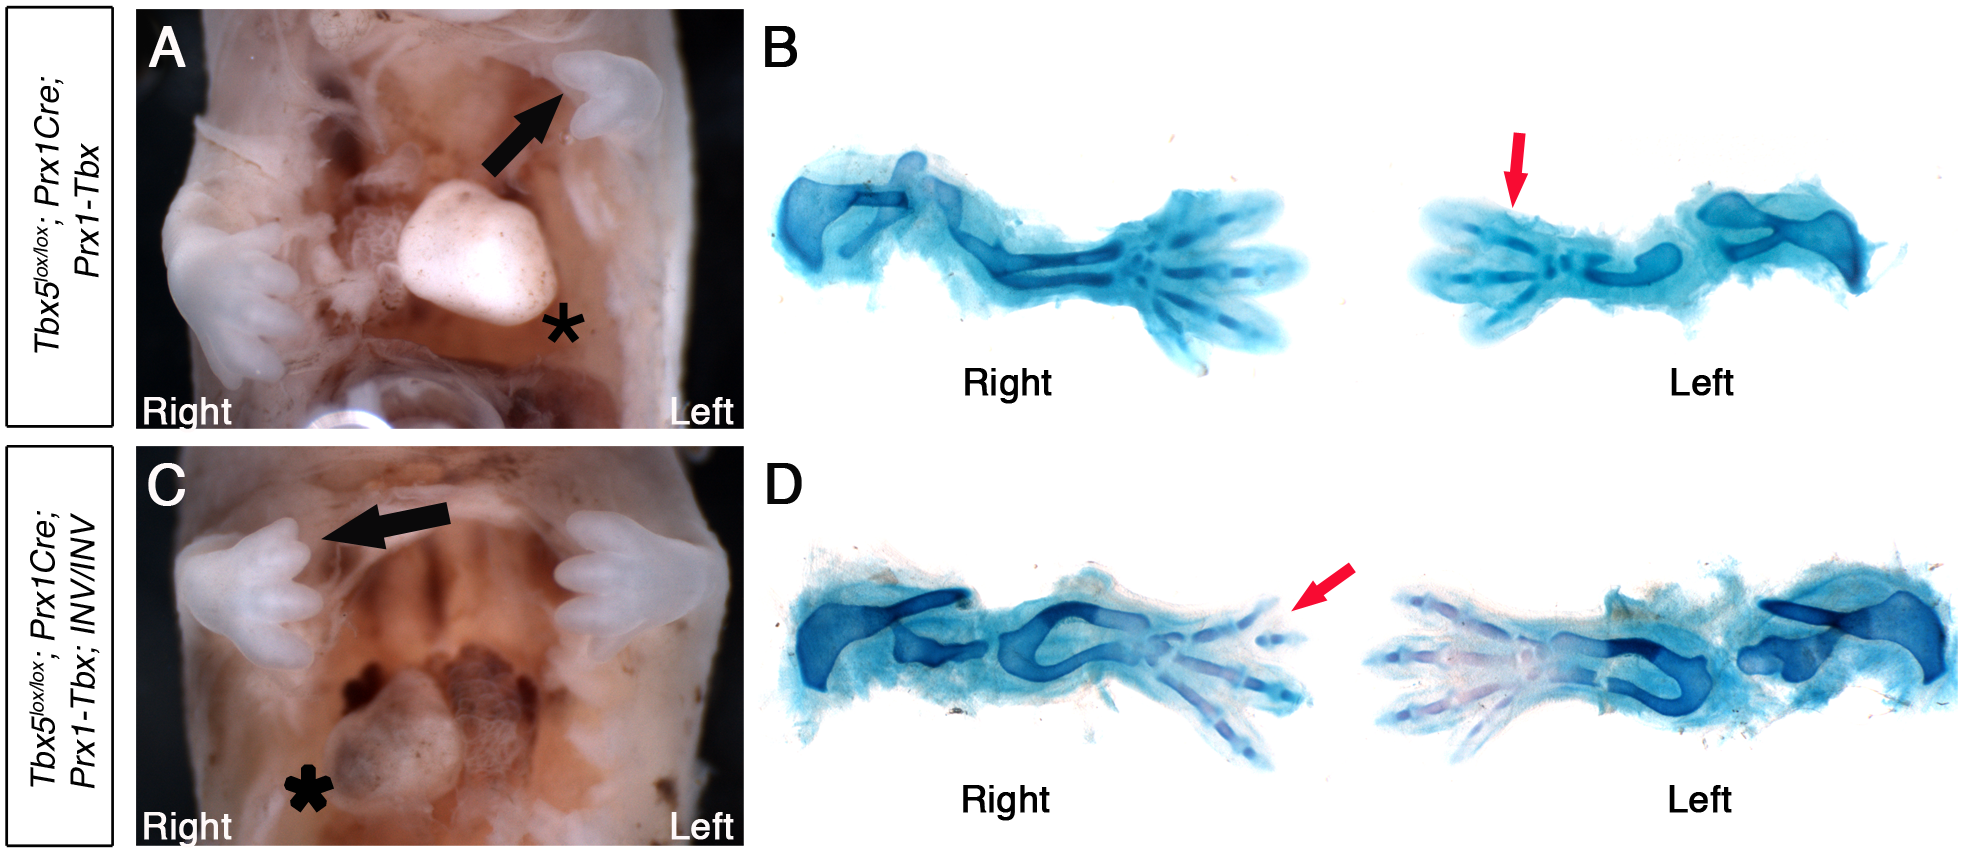 <i>Tbx5</i><sup><i>lox/lox</i></sup><i>;Prx1Cre;Prx1-Tbx;INV/INV</i> mutants with <i>situs inversus</i> have right biased asymmetric forelimb defects.